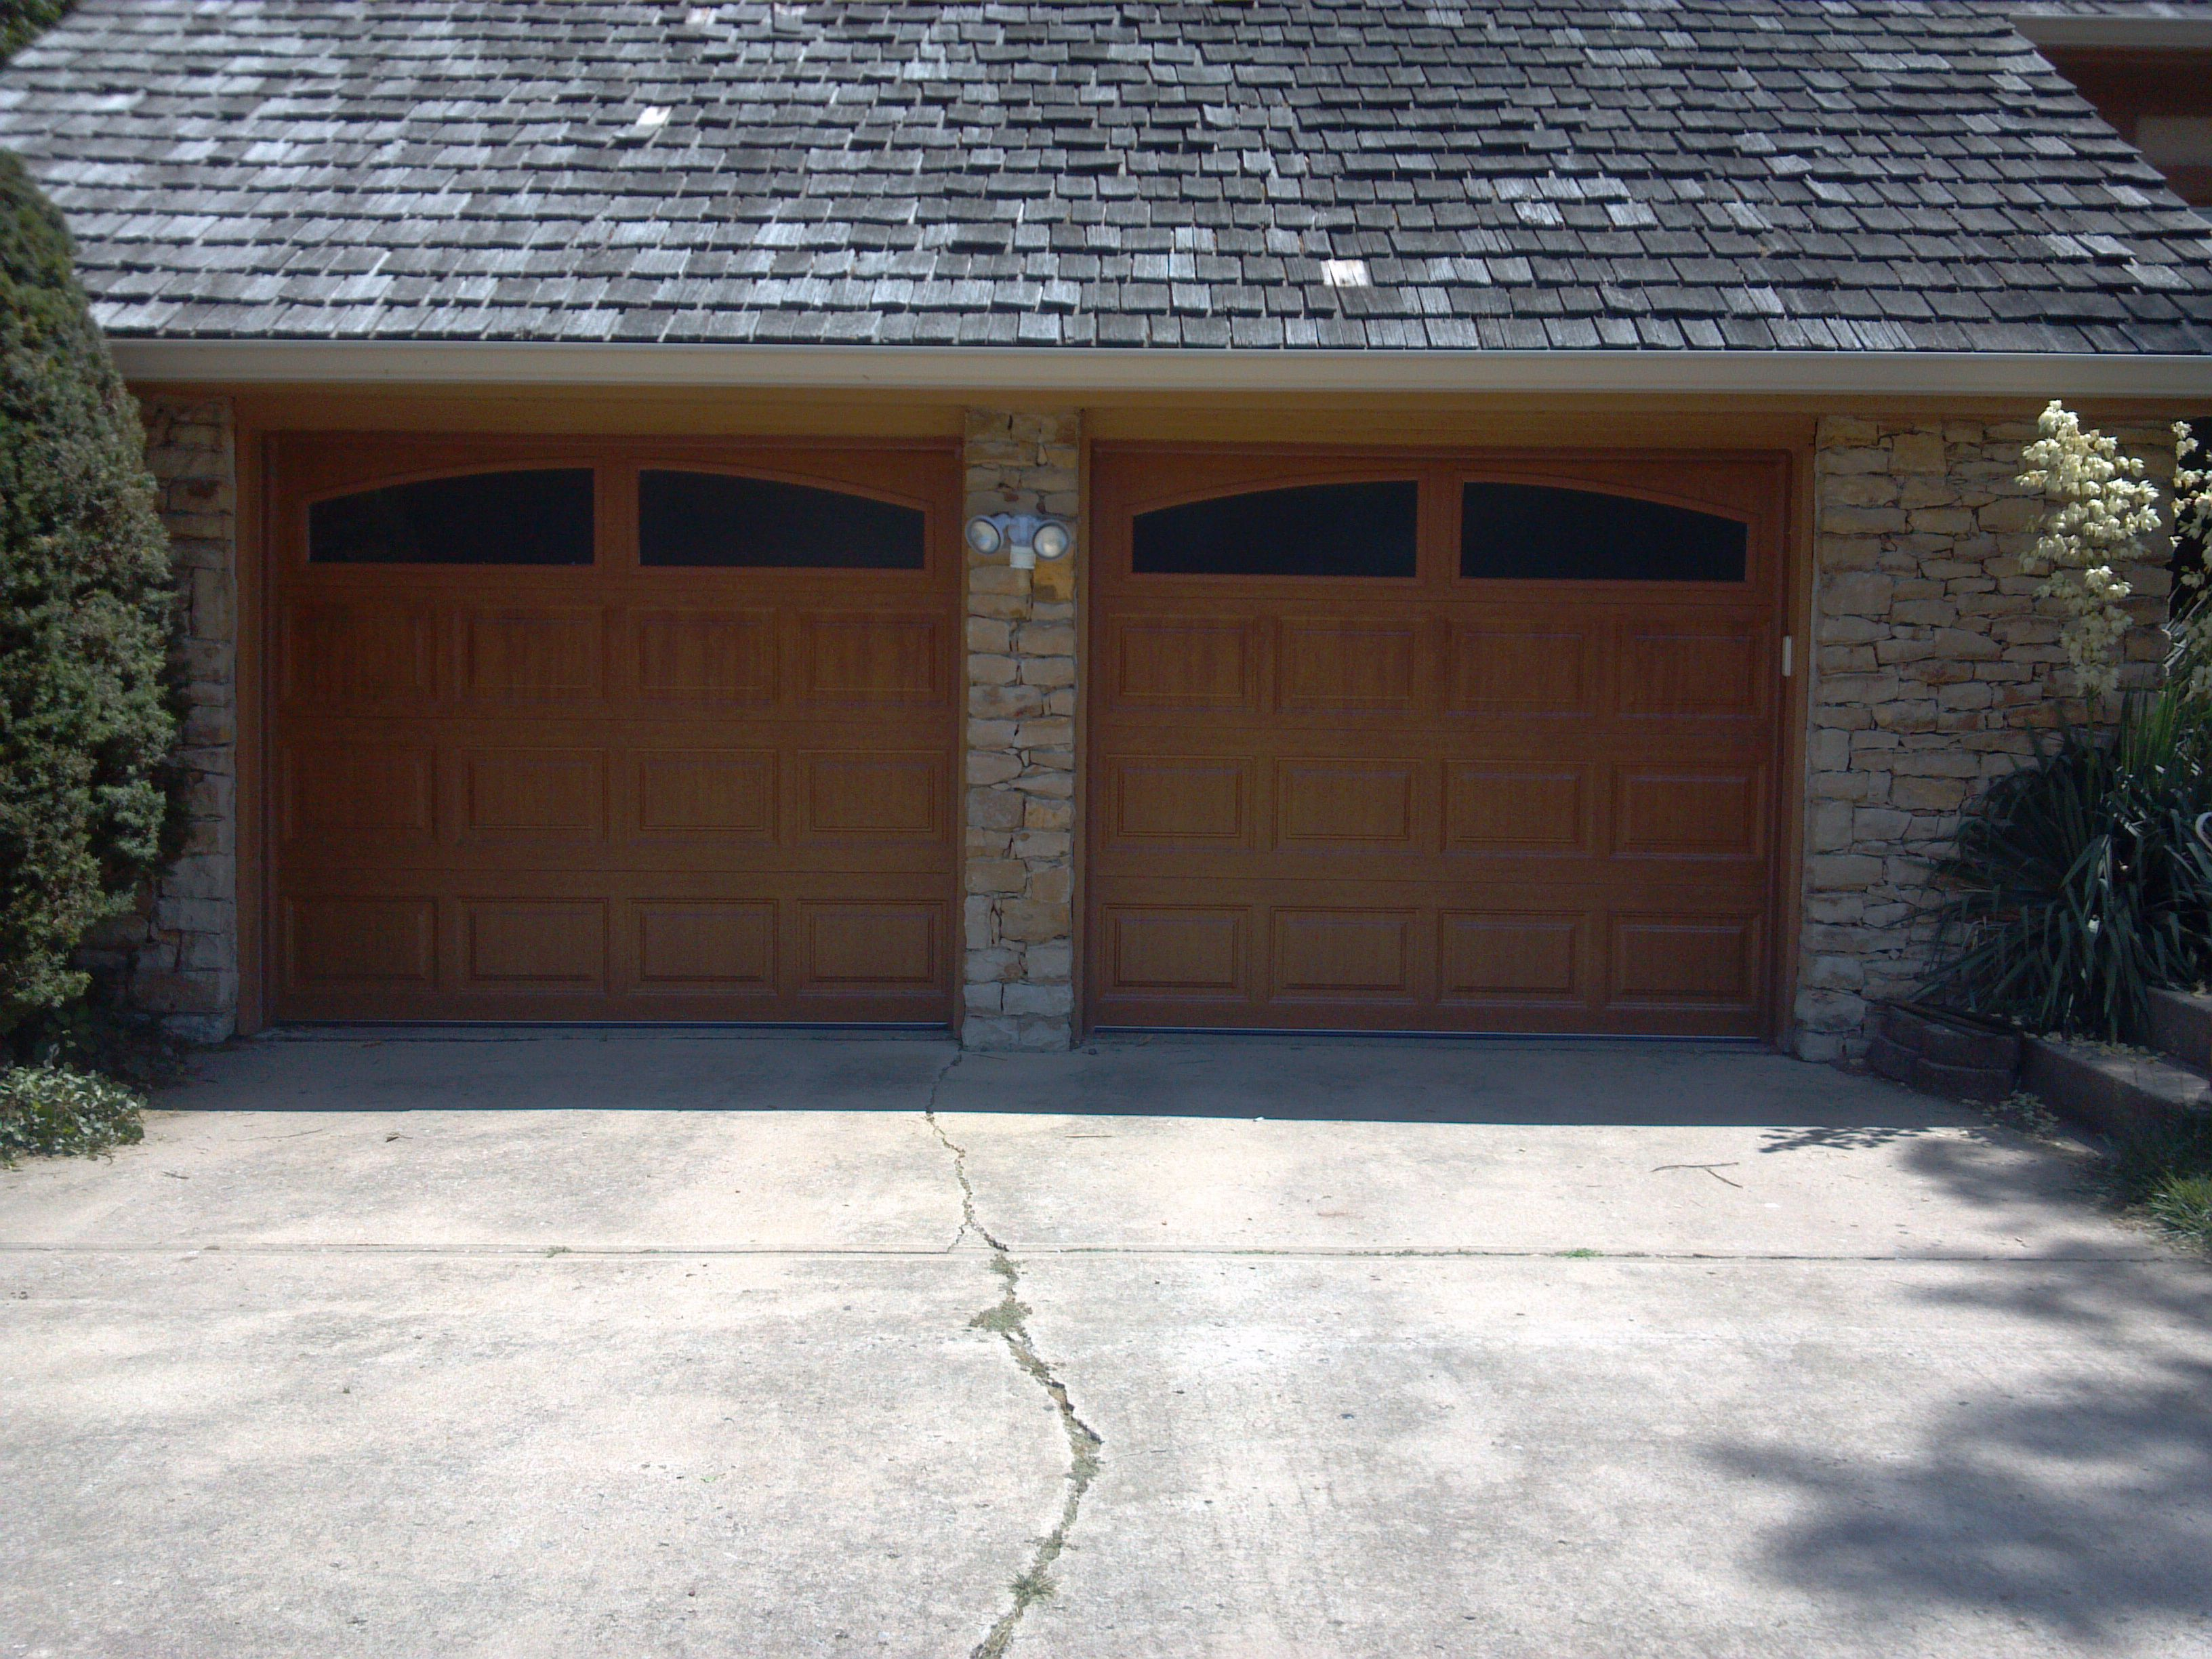 Pin By Arh Design Studio Of Raleigh On Premium Series We Installed Garage Doors Steel Garage Doors Garage Door Design